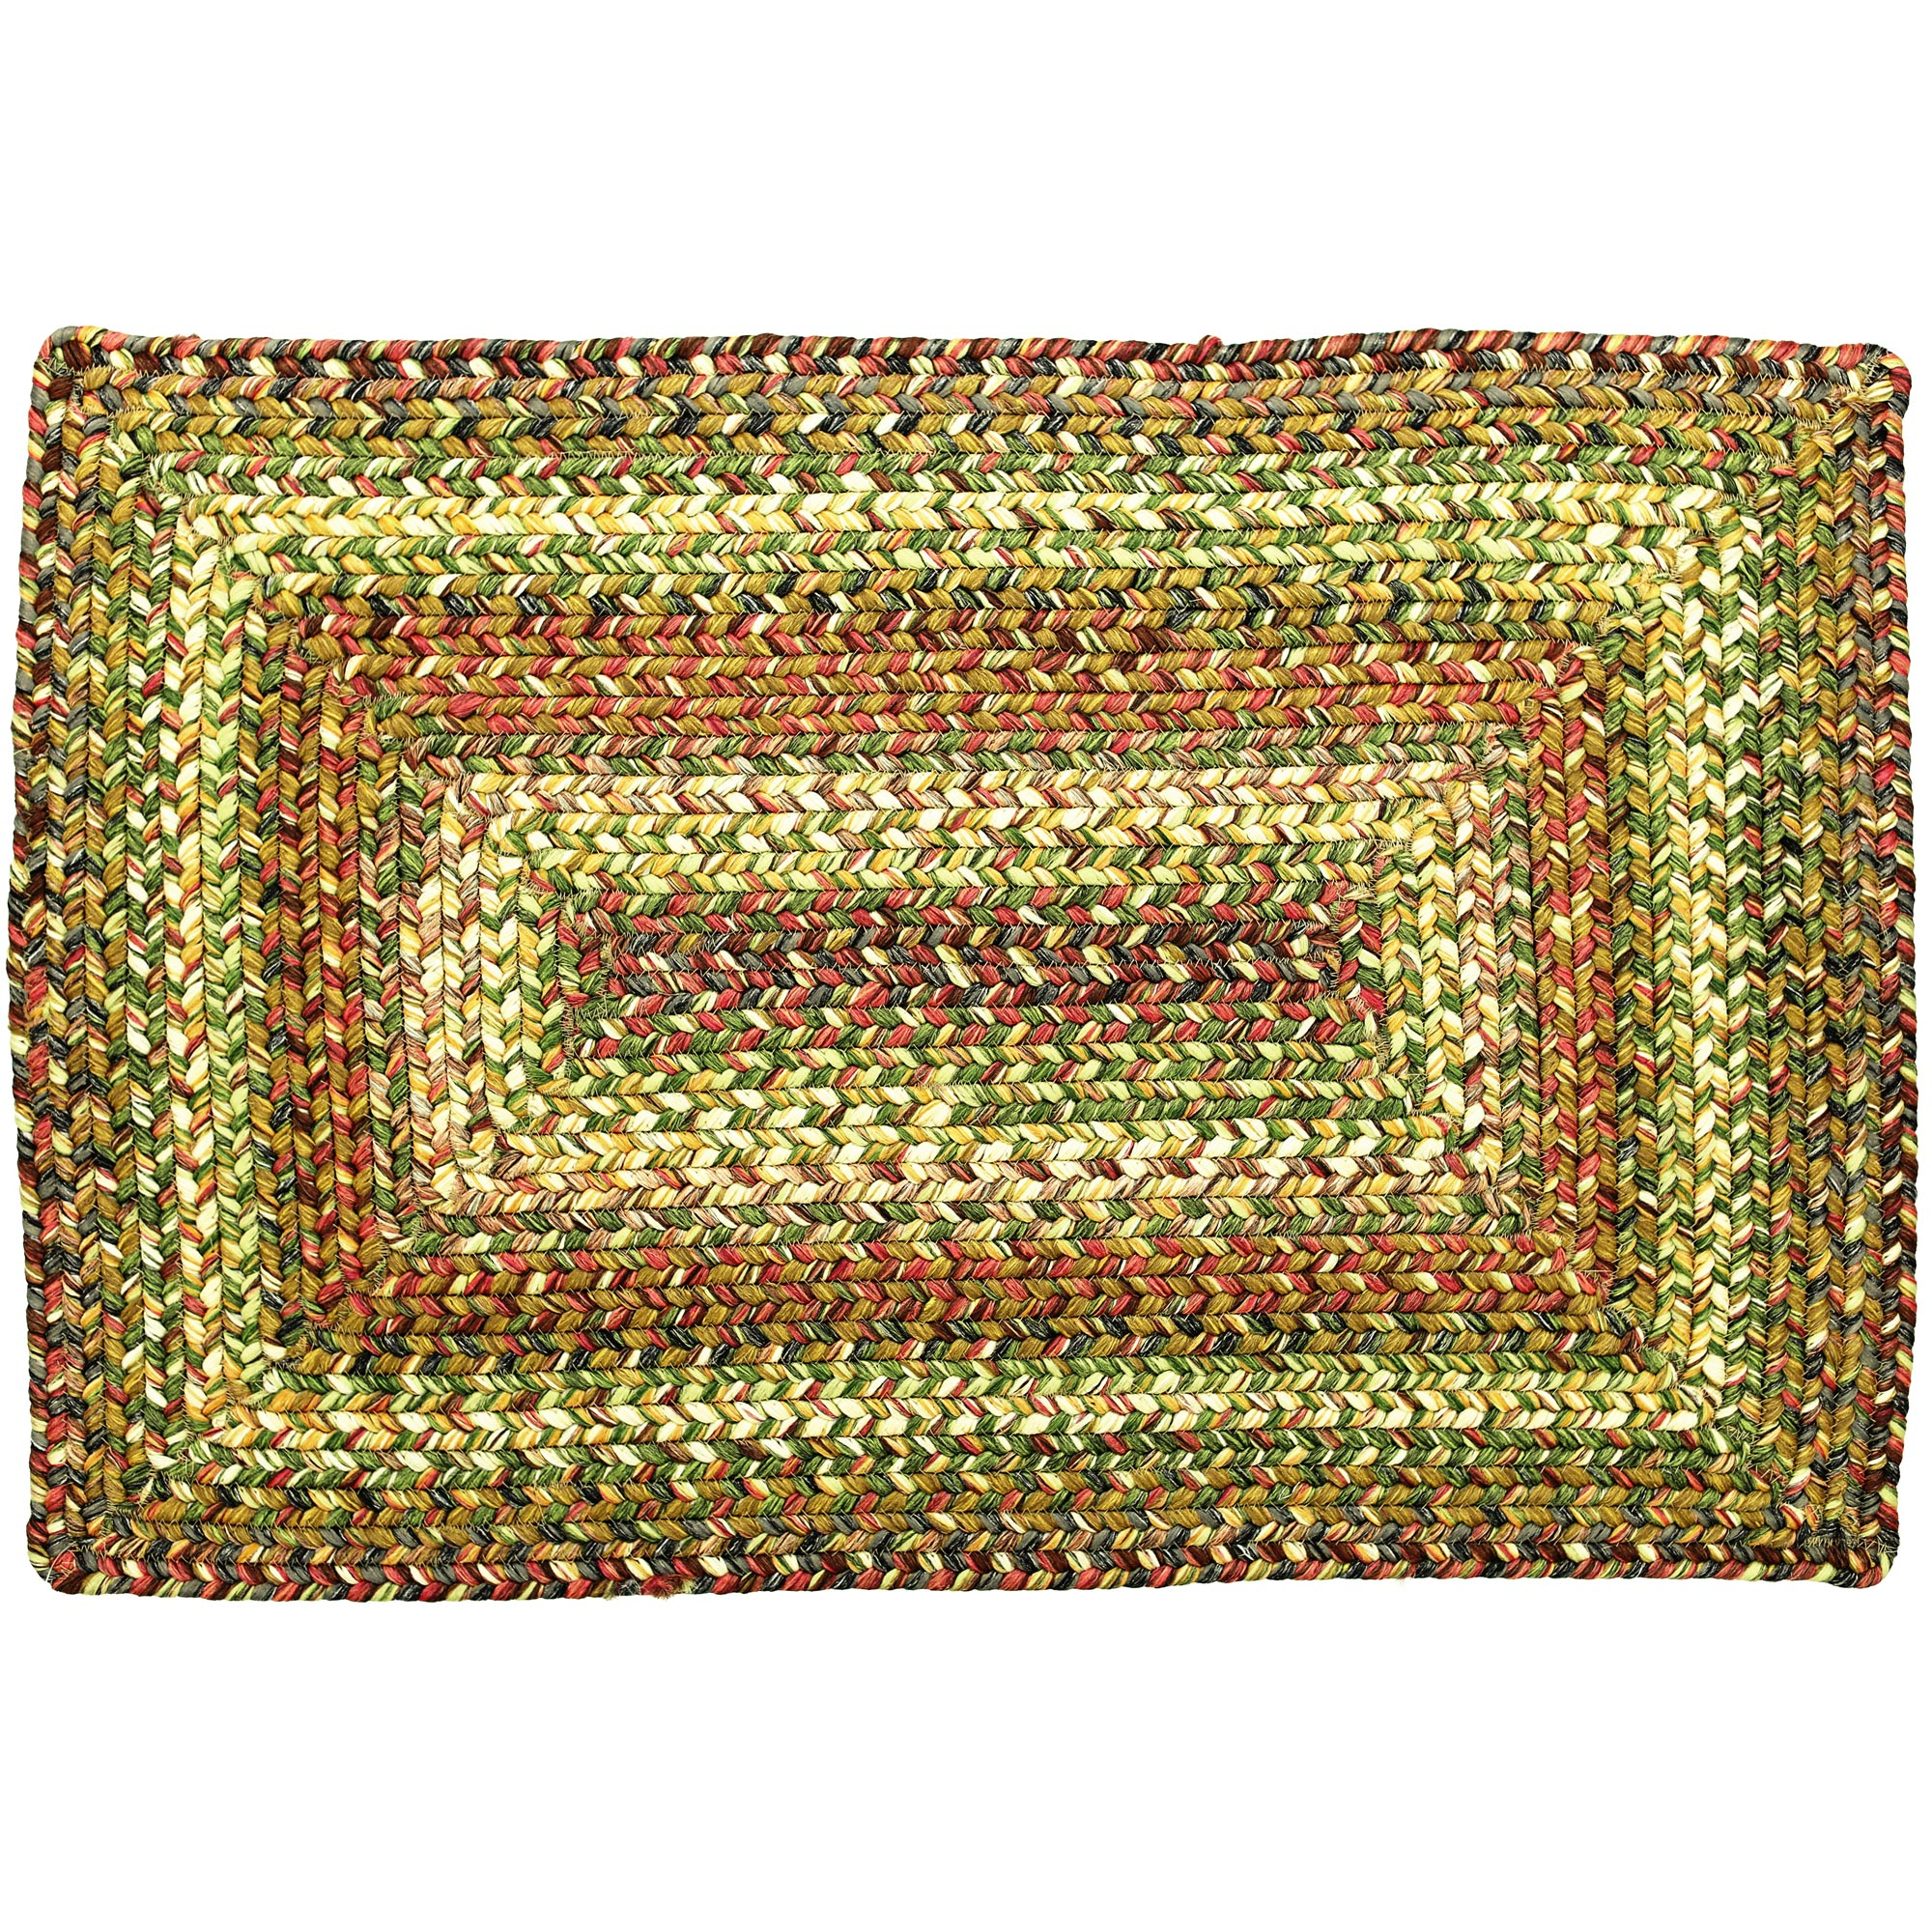 Washable Throw Rugs On Sale: Rainforest Ultra Durable Washable Braided Area Rugs Oval